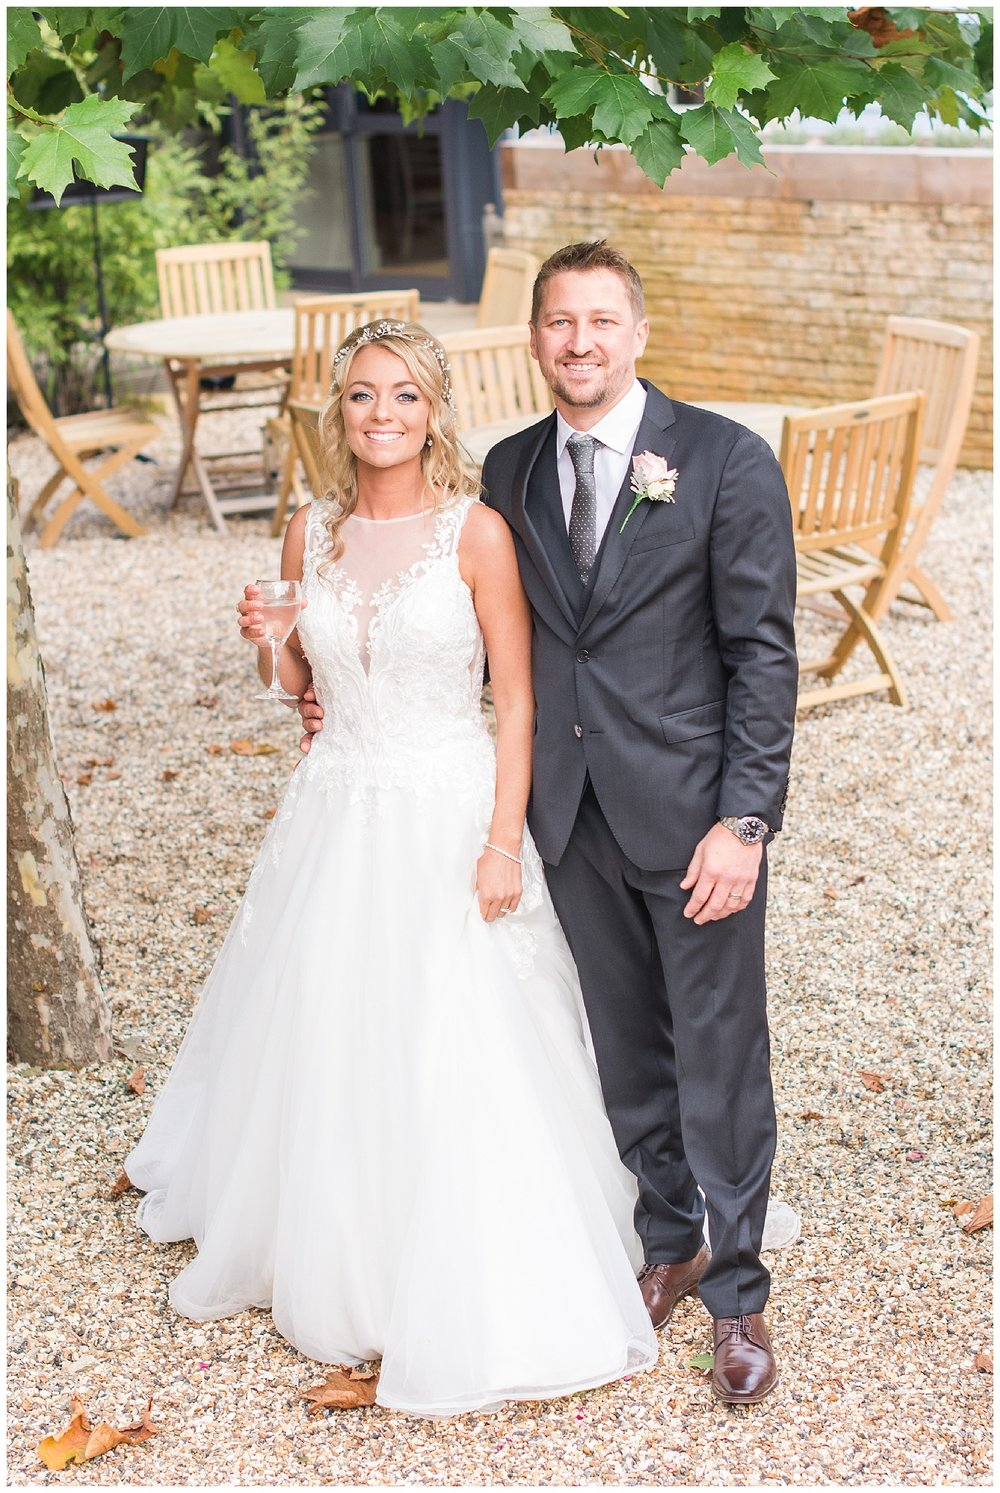 Liz_Toms_Photography_Lifestyle_and_Natural_Light_Photographer_Rhos_on_Sea_Colwyn_Bay_Llandudno_Wirral_Cotswolds_Wedding_Lapstone_Barn